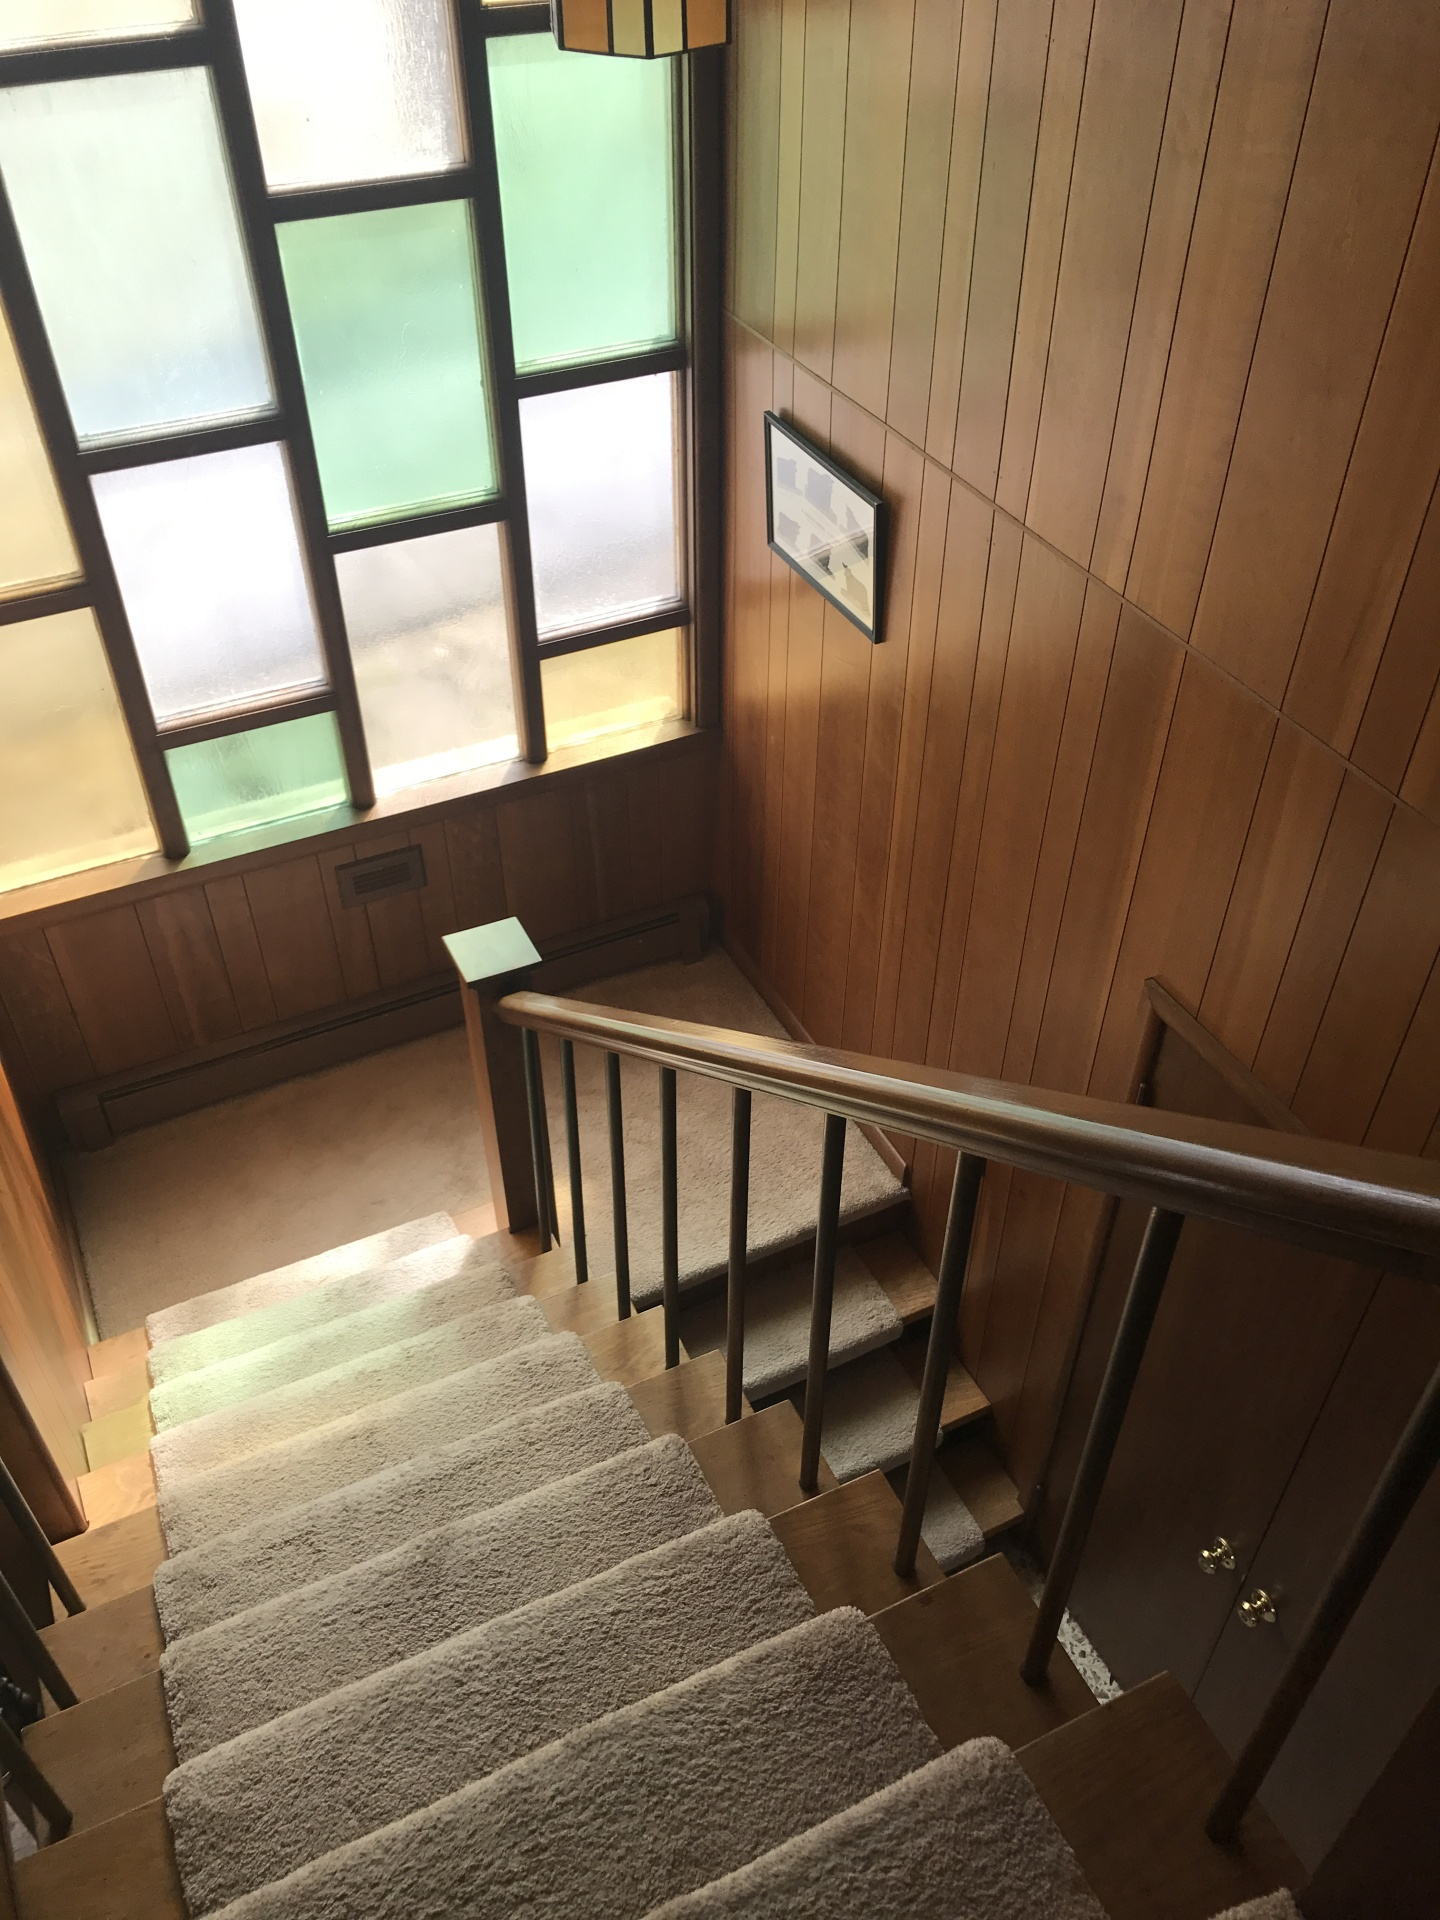 Stairwell to second floor in the main house